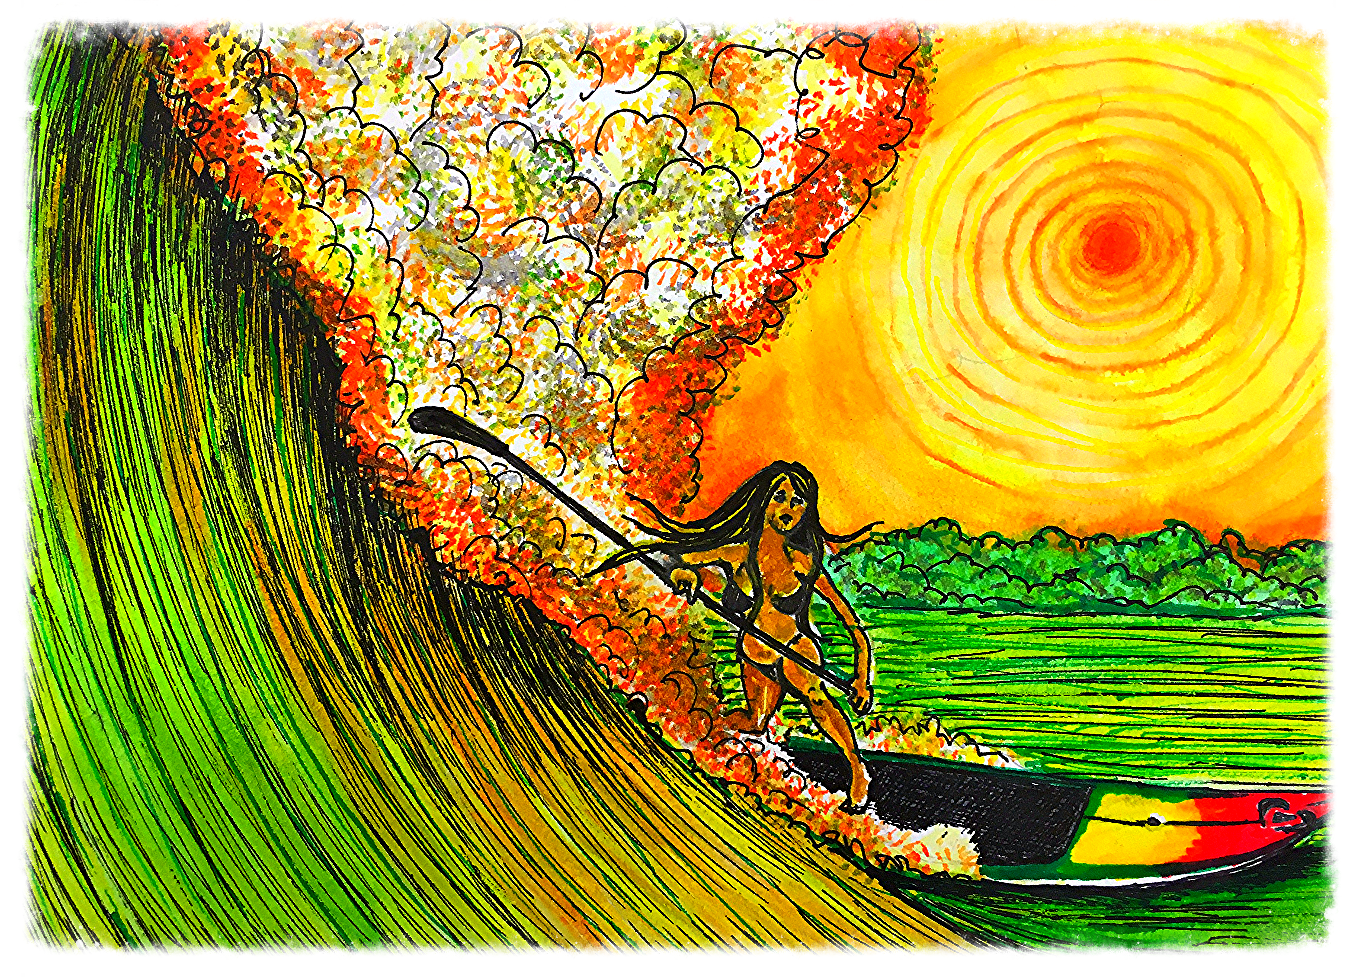 Surf Art by Brent February #10